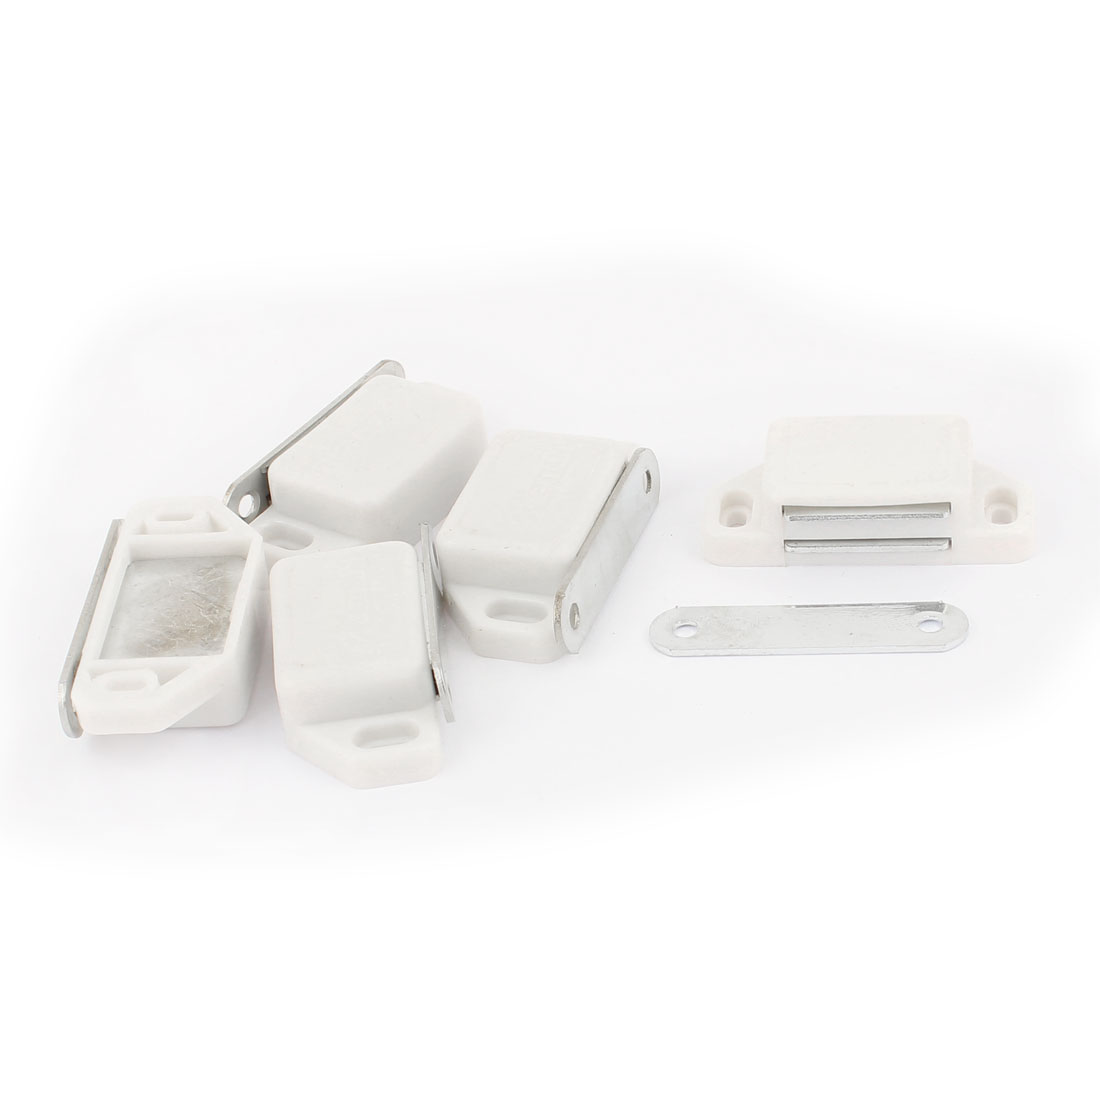 Cupboard Cabinet Closet Door Plastic Shell Magnetic Latch Catch White 5pcs